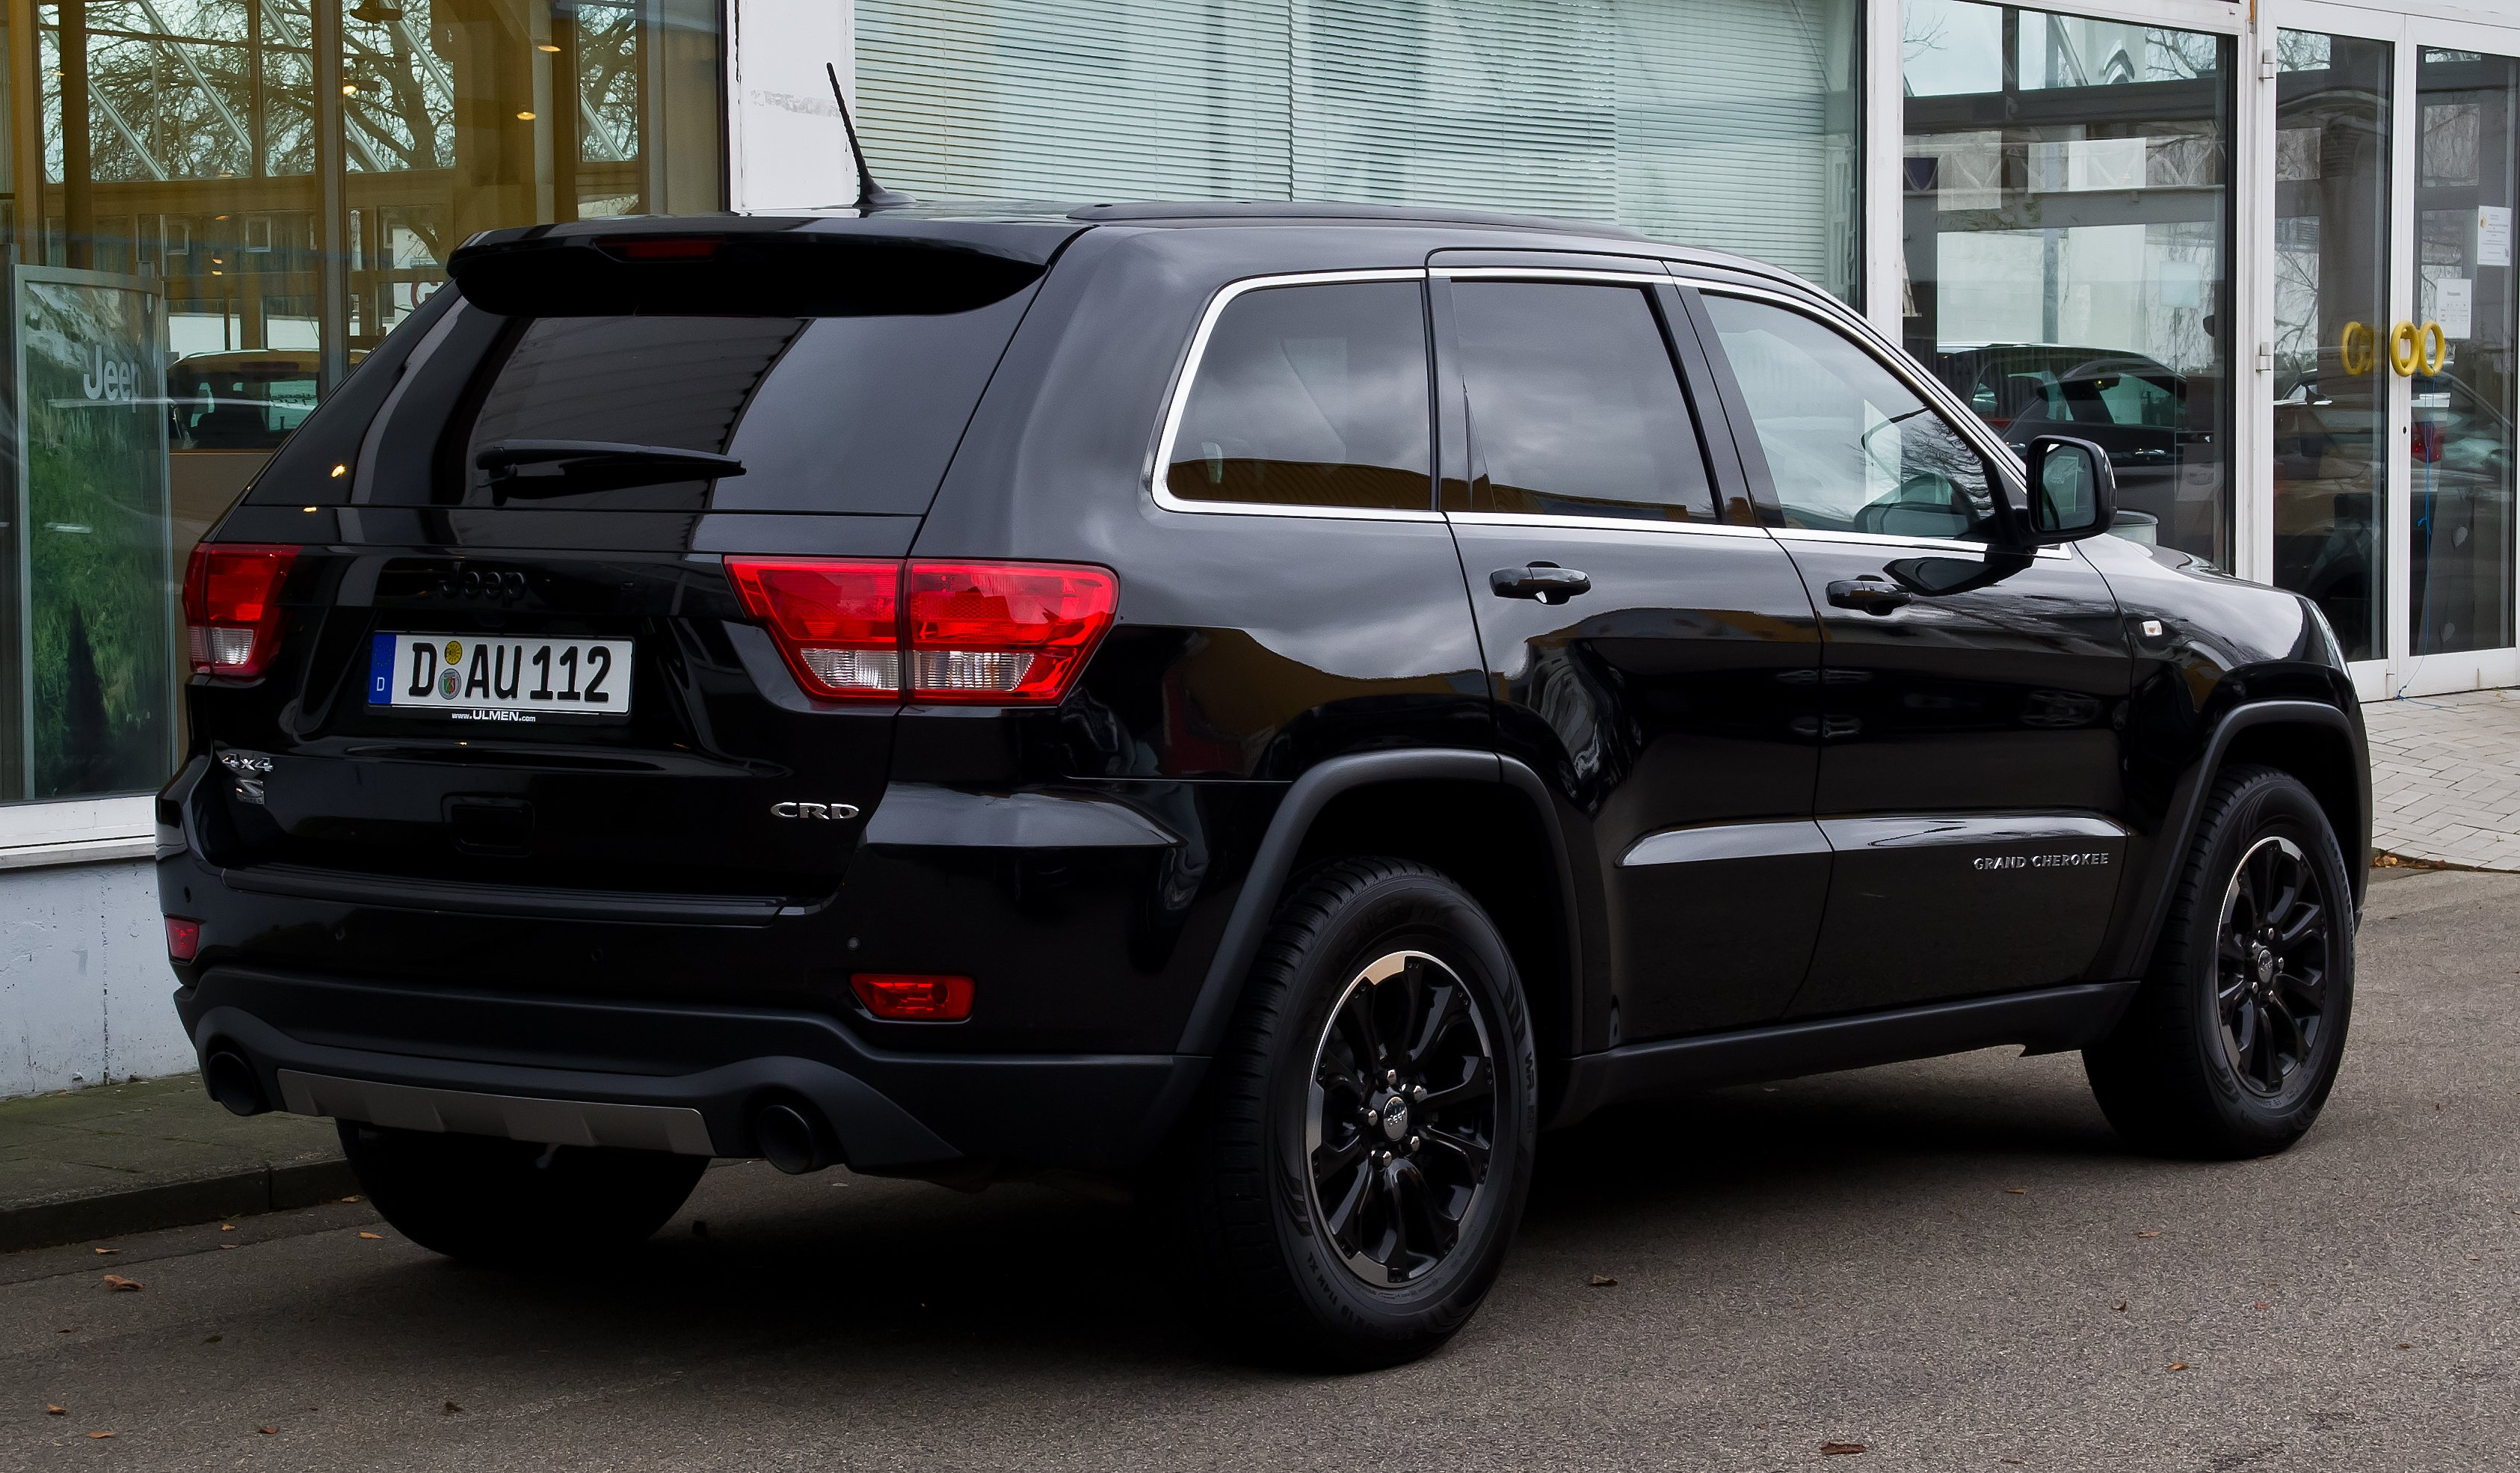 jeep grand cherokee wk 2013 photo gallery. Cars Review. Best American Auto & Cars Review